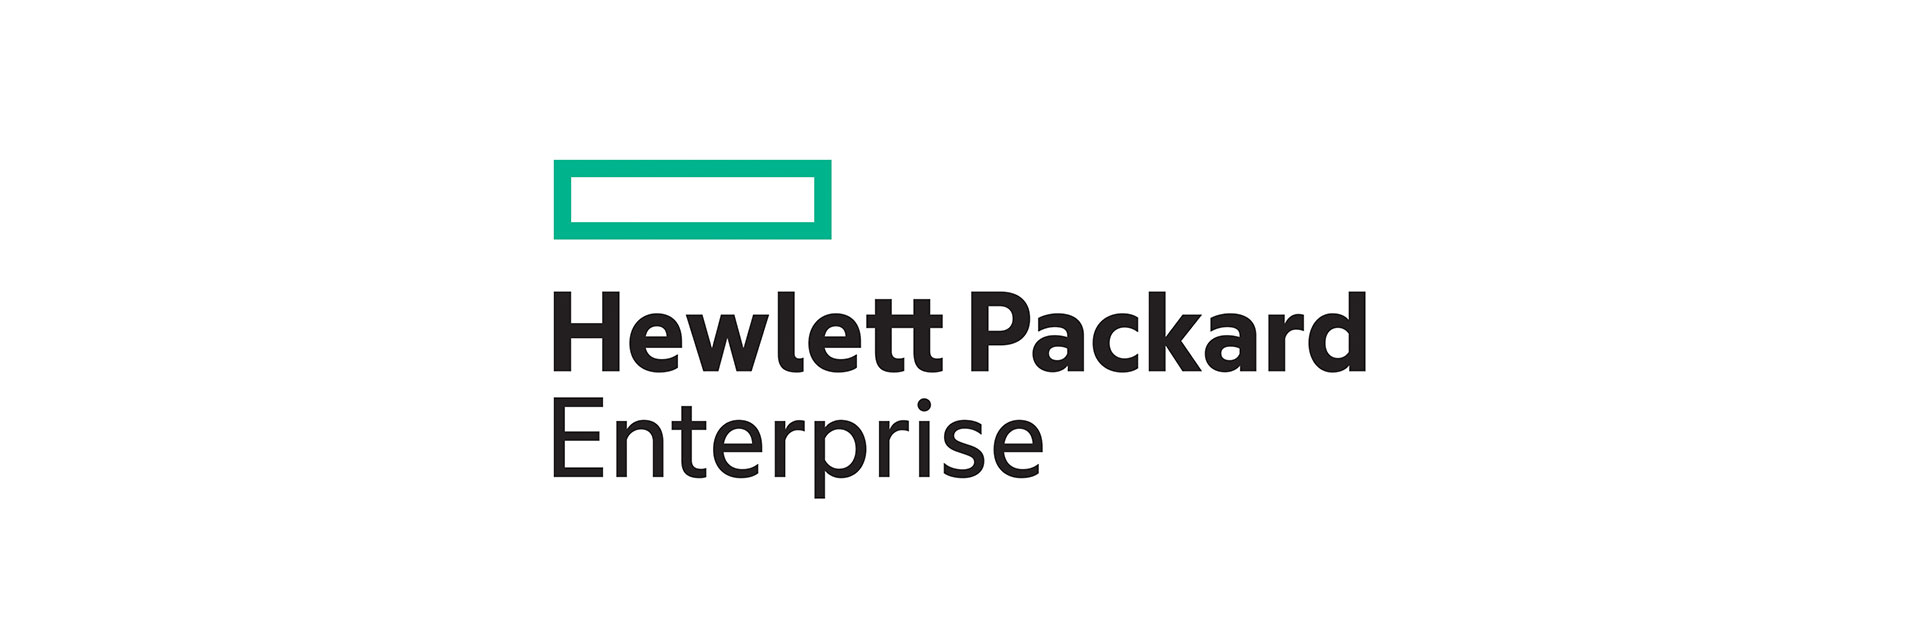 Hewlett-Packard Enterprise